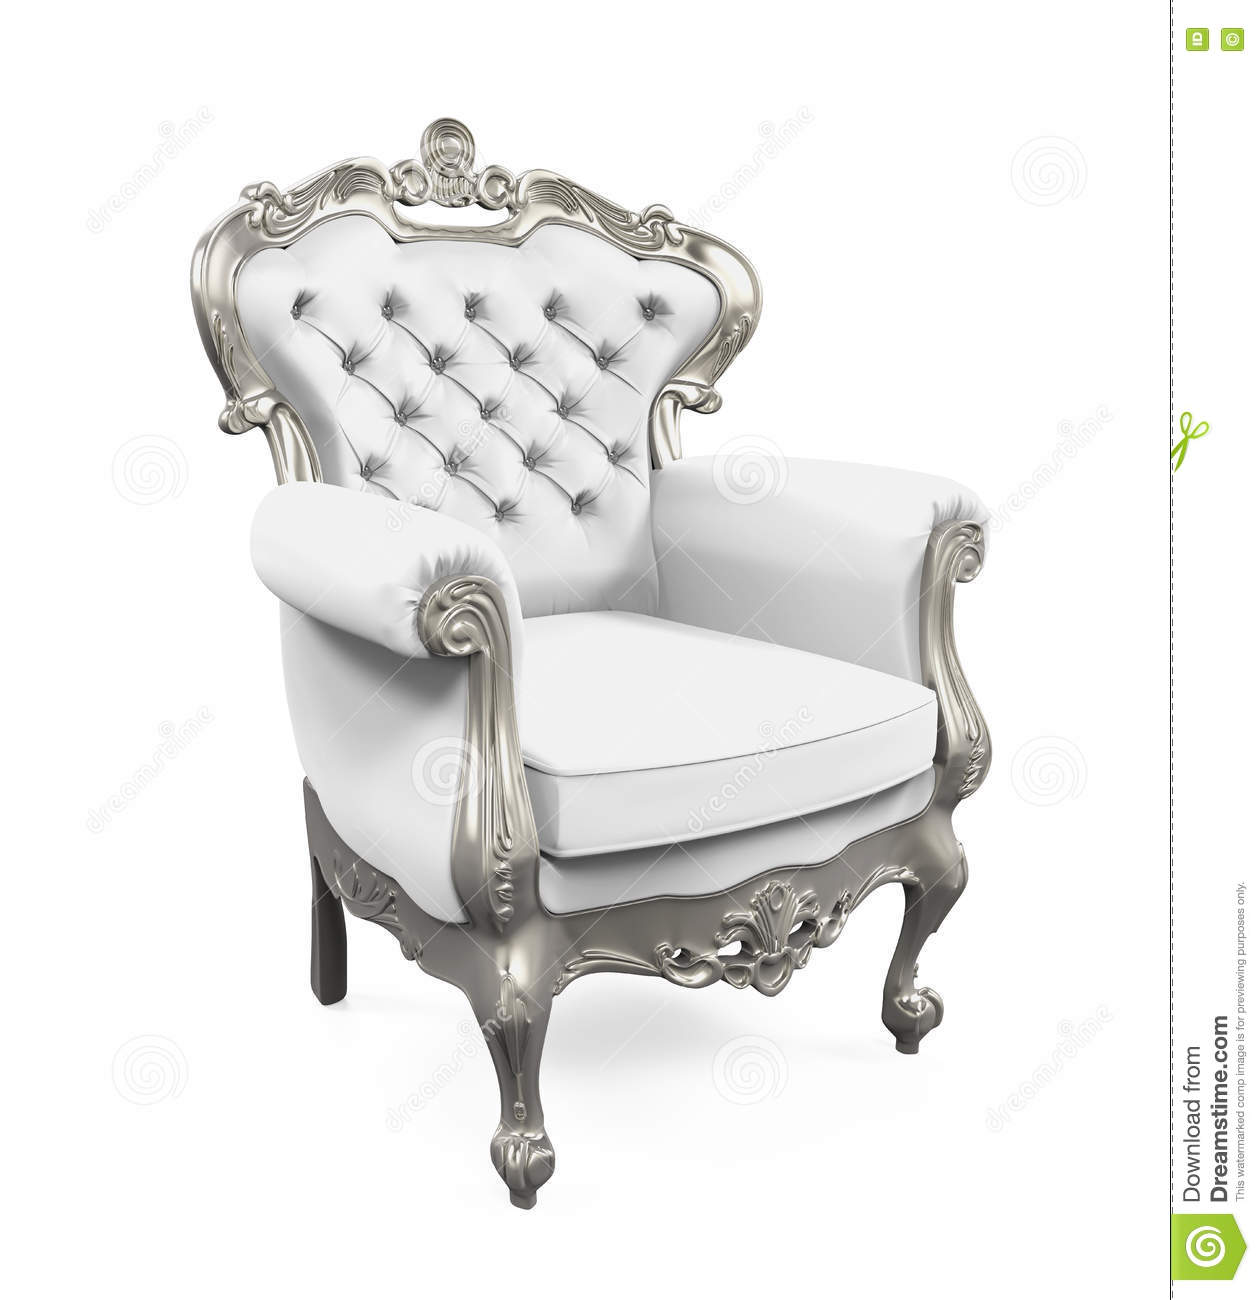 King Throne Chair Stock Illustration Image 75616472